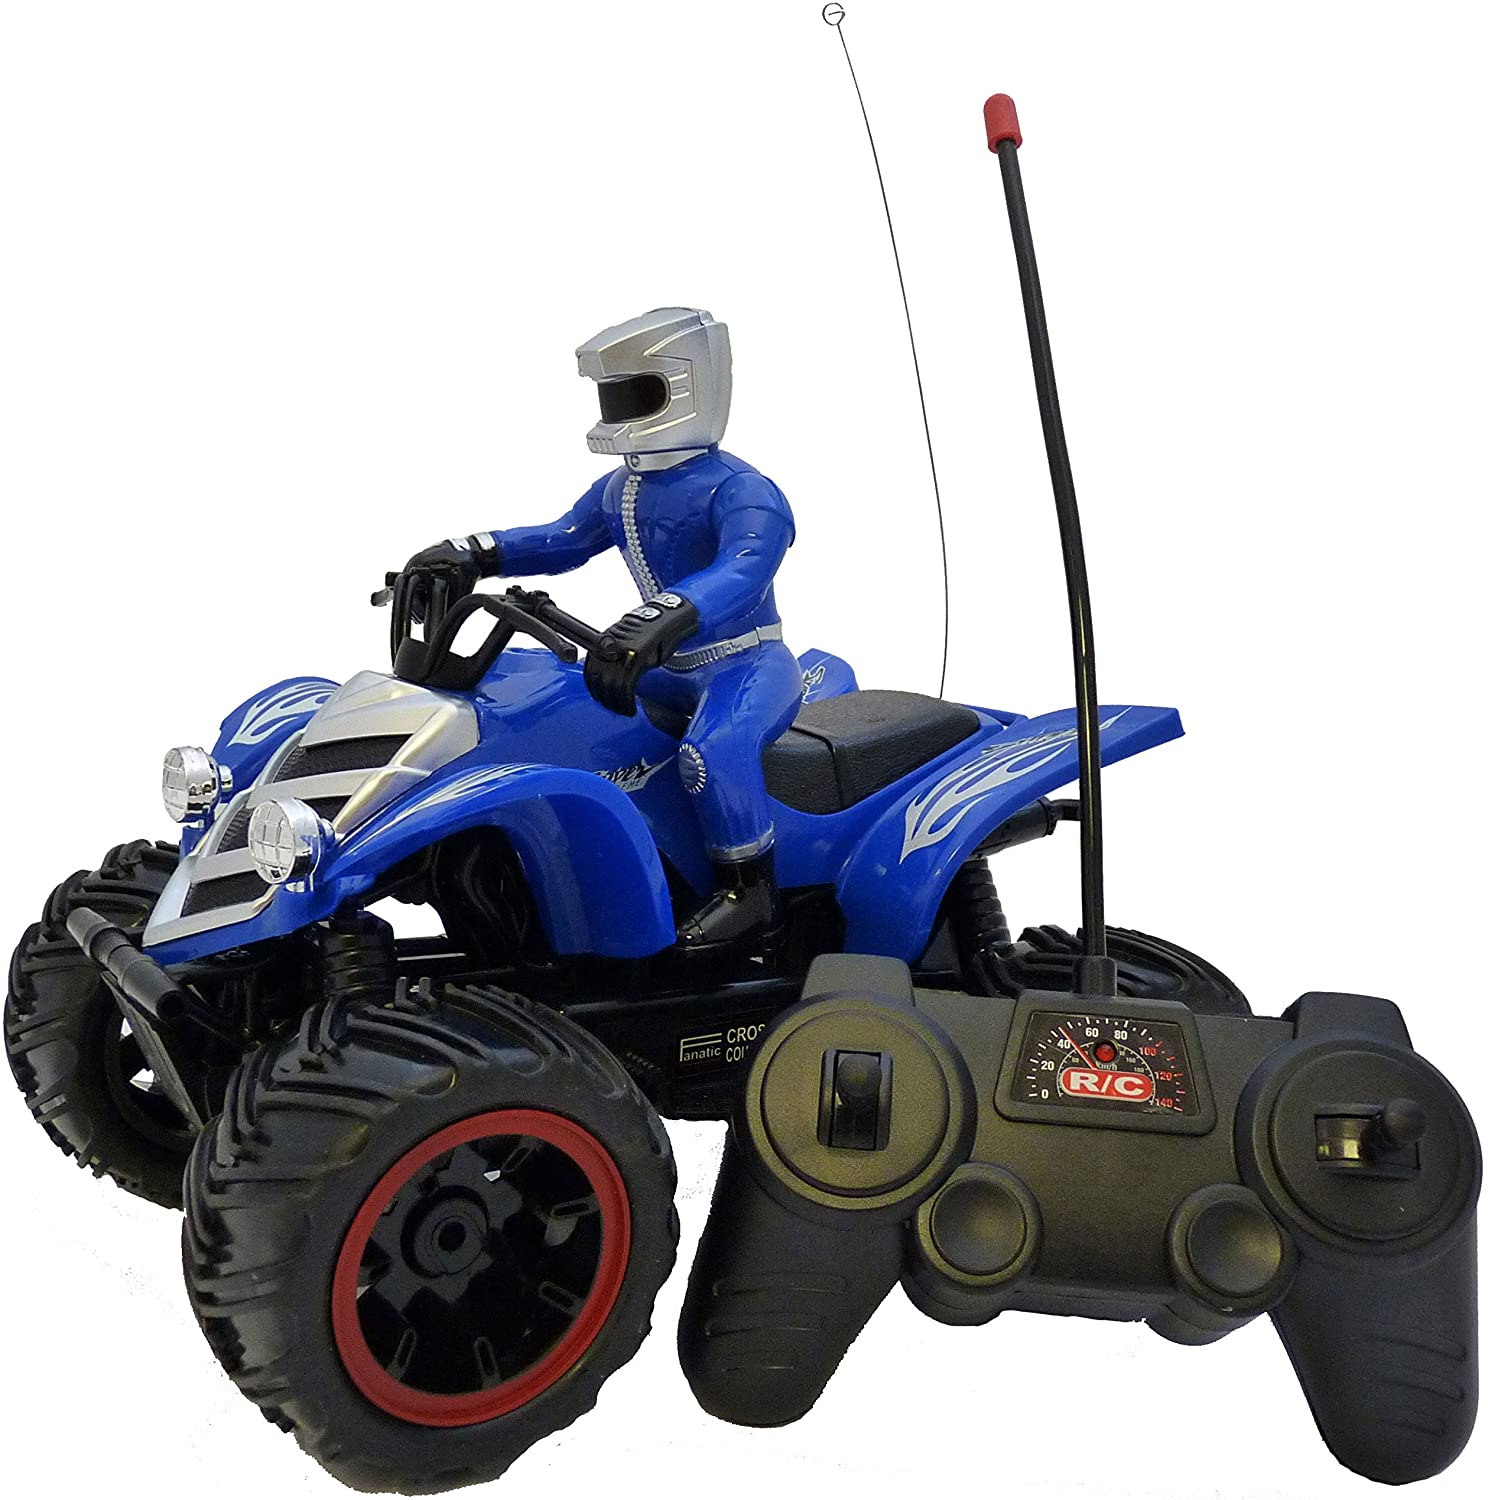 Remote Control Quad Bike TG635 – Super Fun Speed Master Remote Control Toy Quad Bike - Fun Gift for Boys Aged 6 7 8 9 10+ by ThinkGizmos (Trademark Protected)